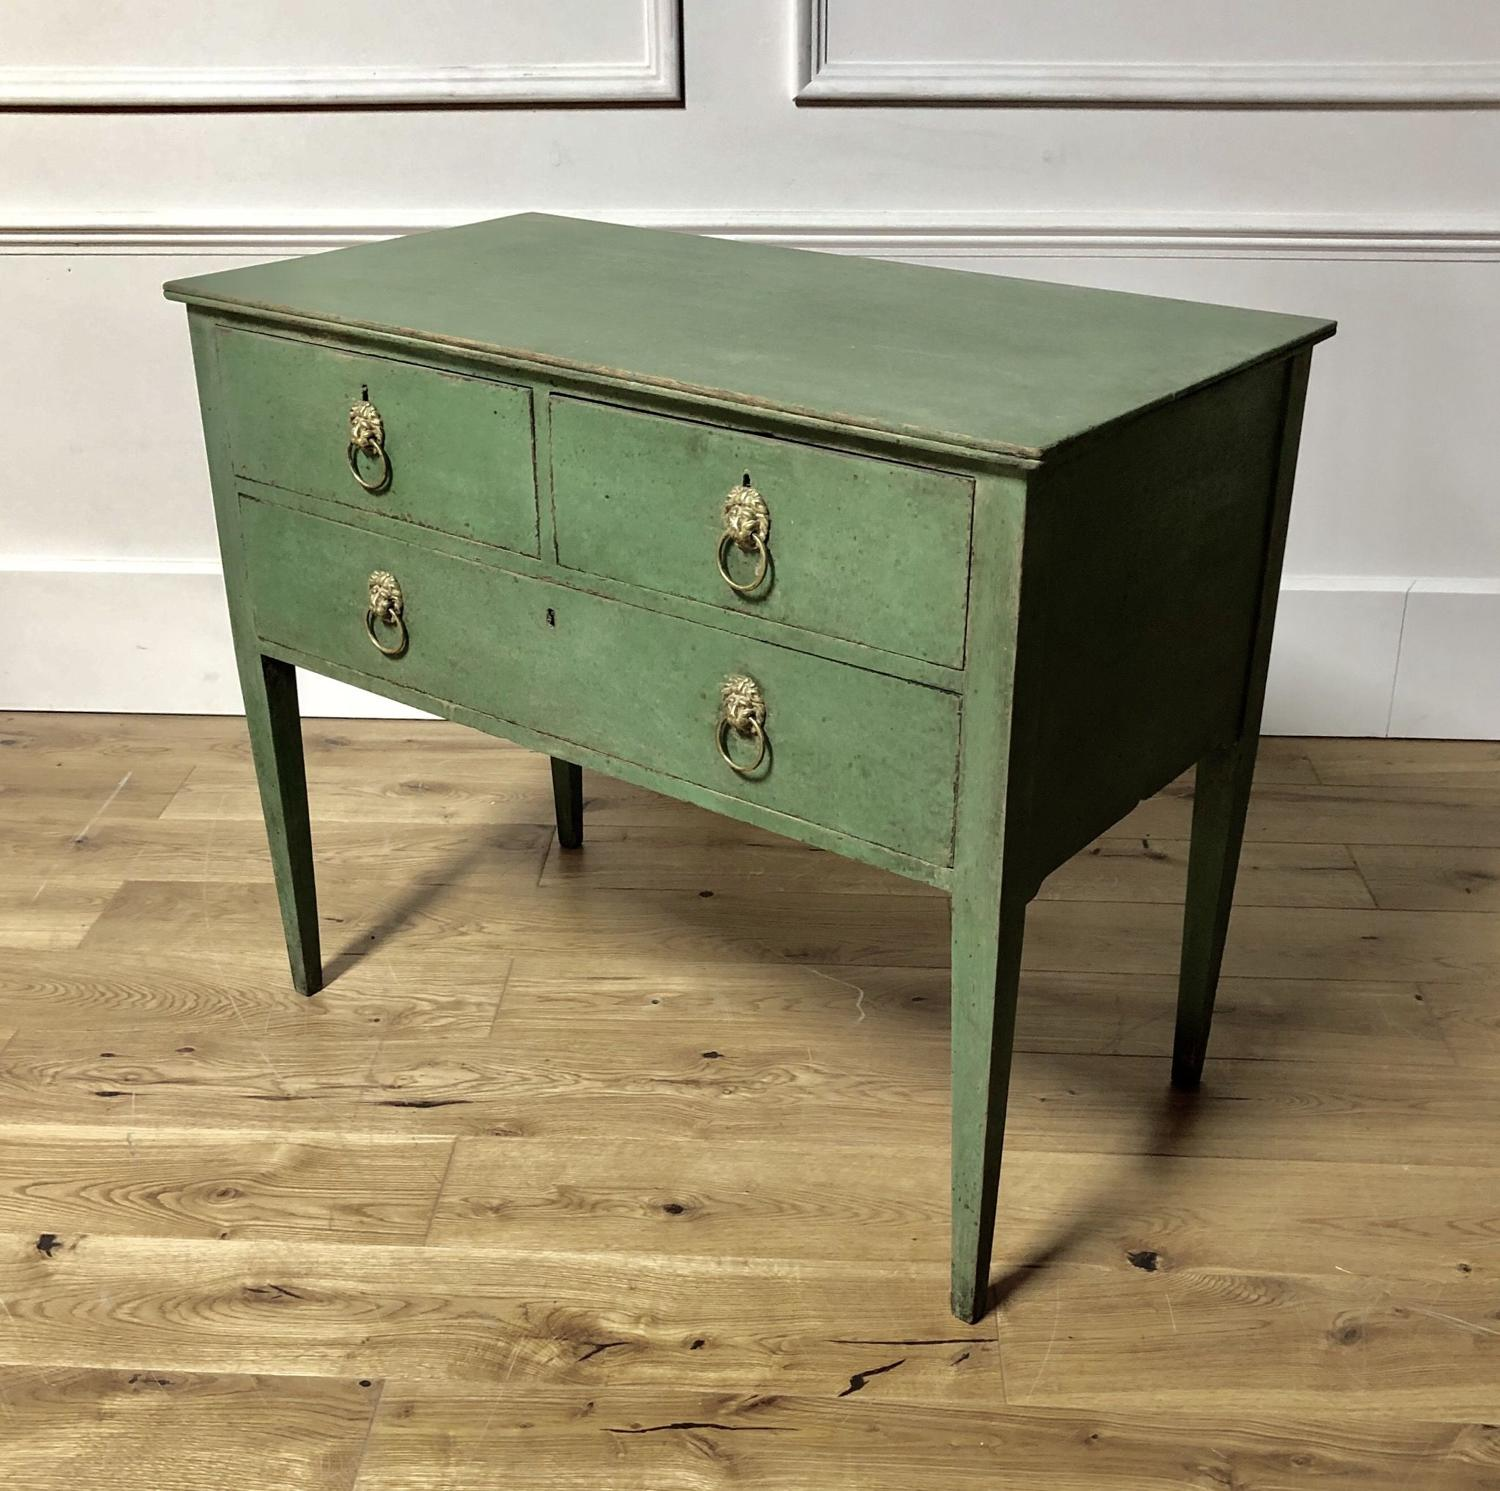 A 19thC Painted Lowboy chest